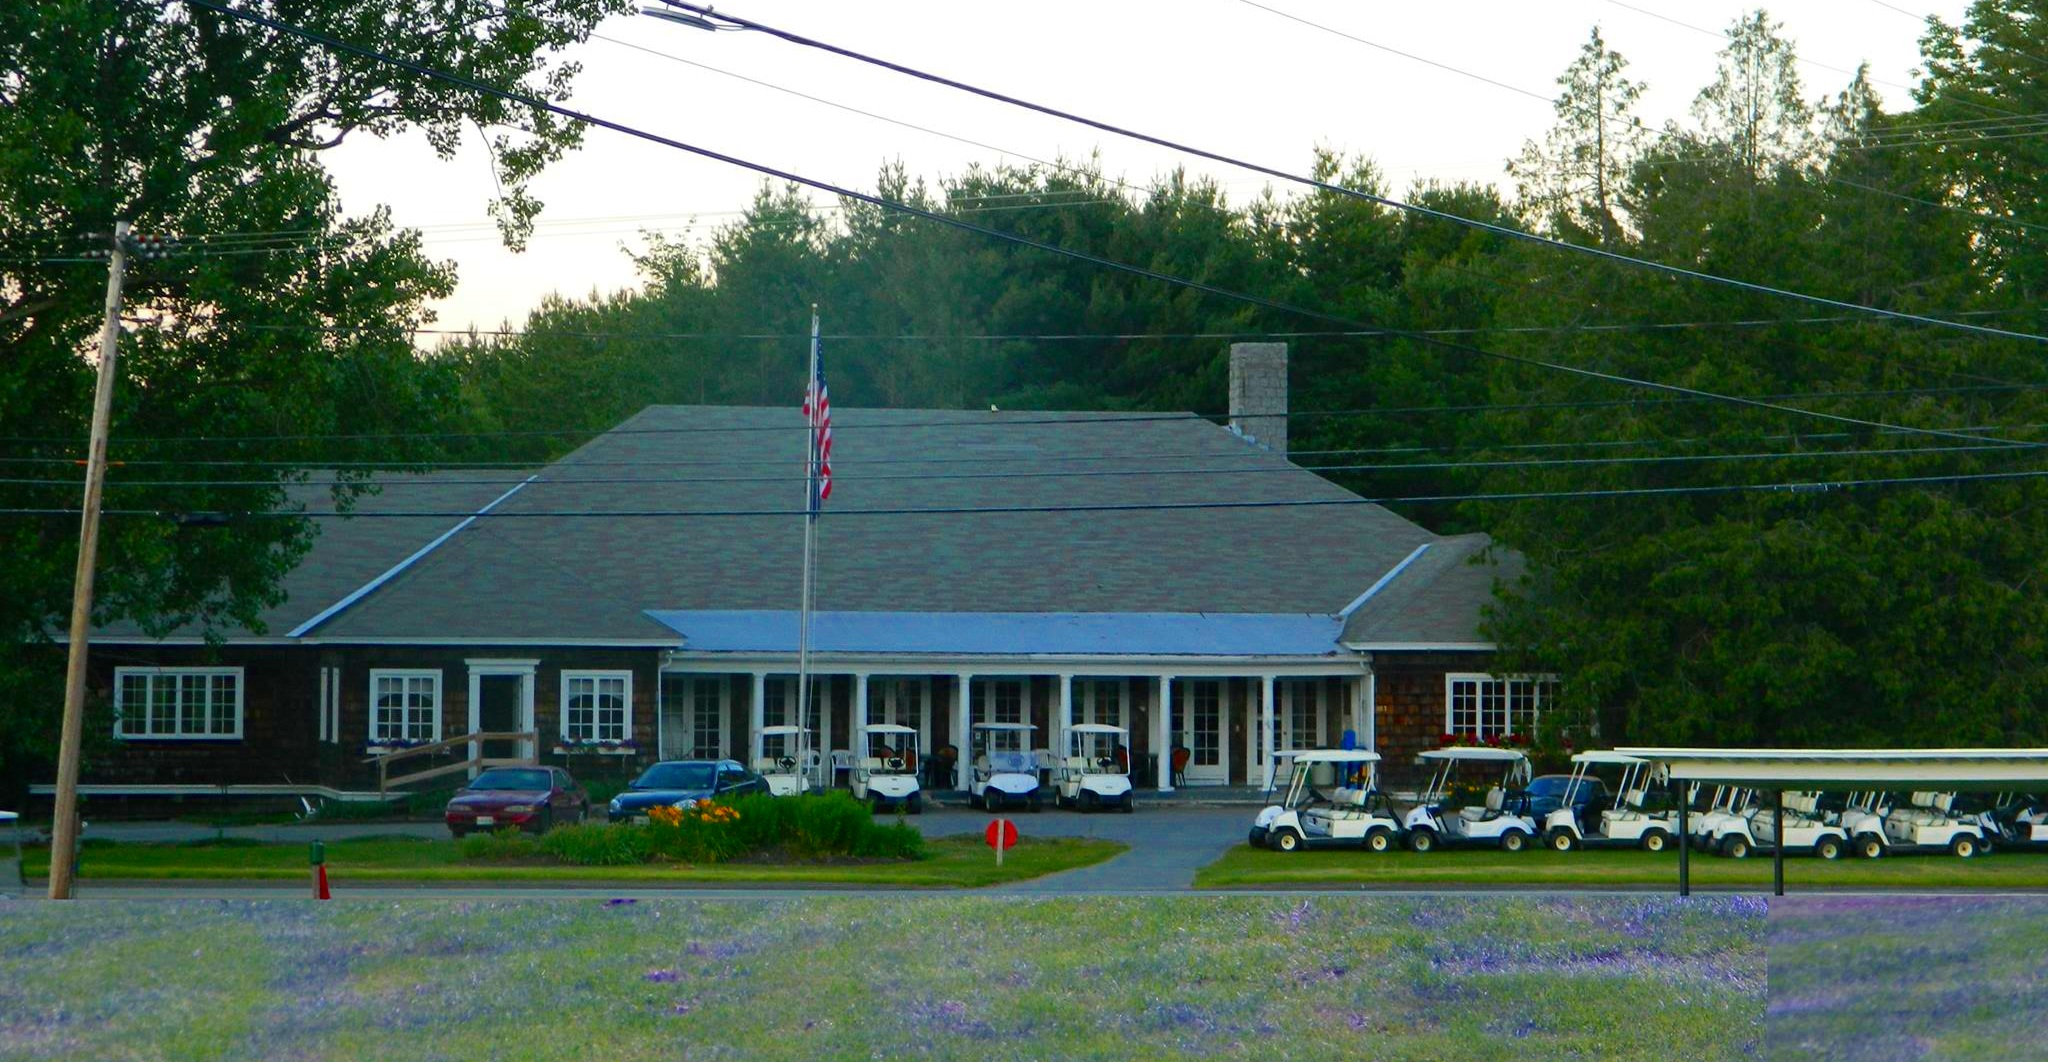 Lakewood Golf Course Club House - Photo from www.lakewoodgolfmaine.com